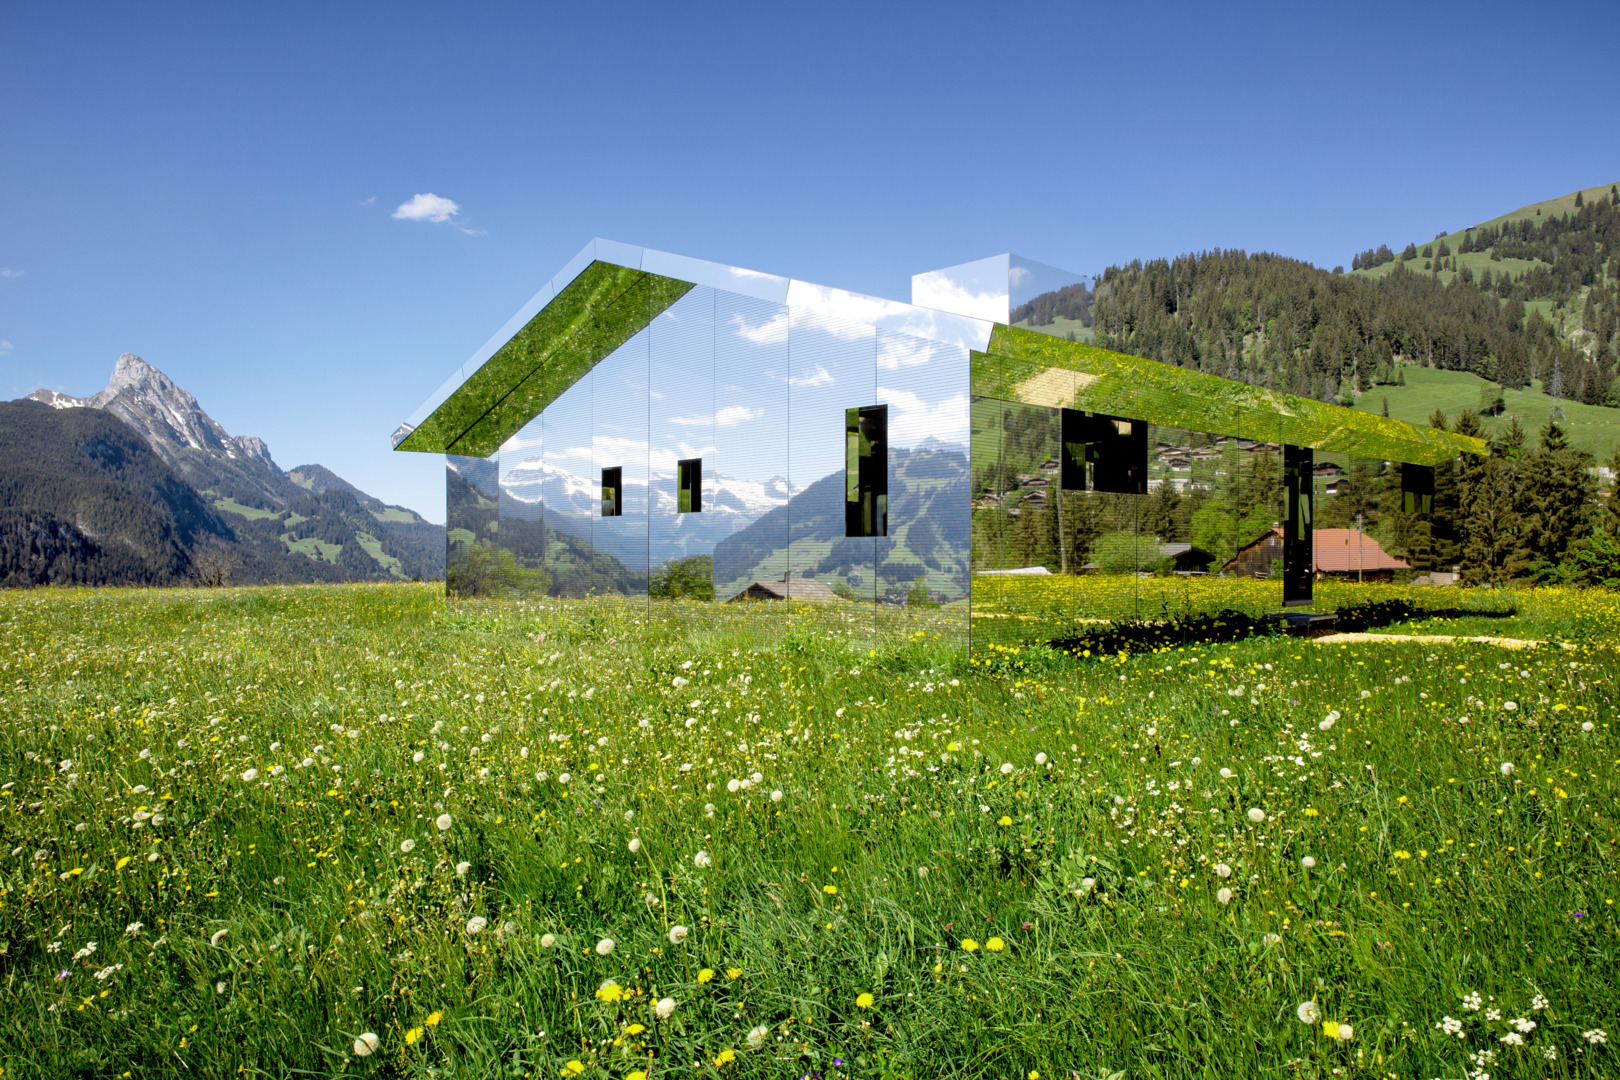 A mirrored house in the countryside, reflecting the scenery.